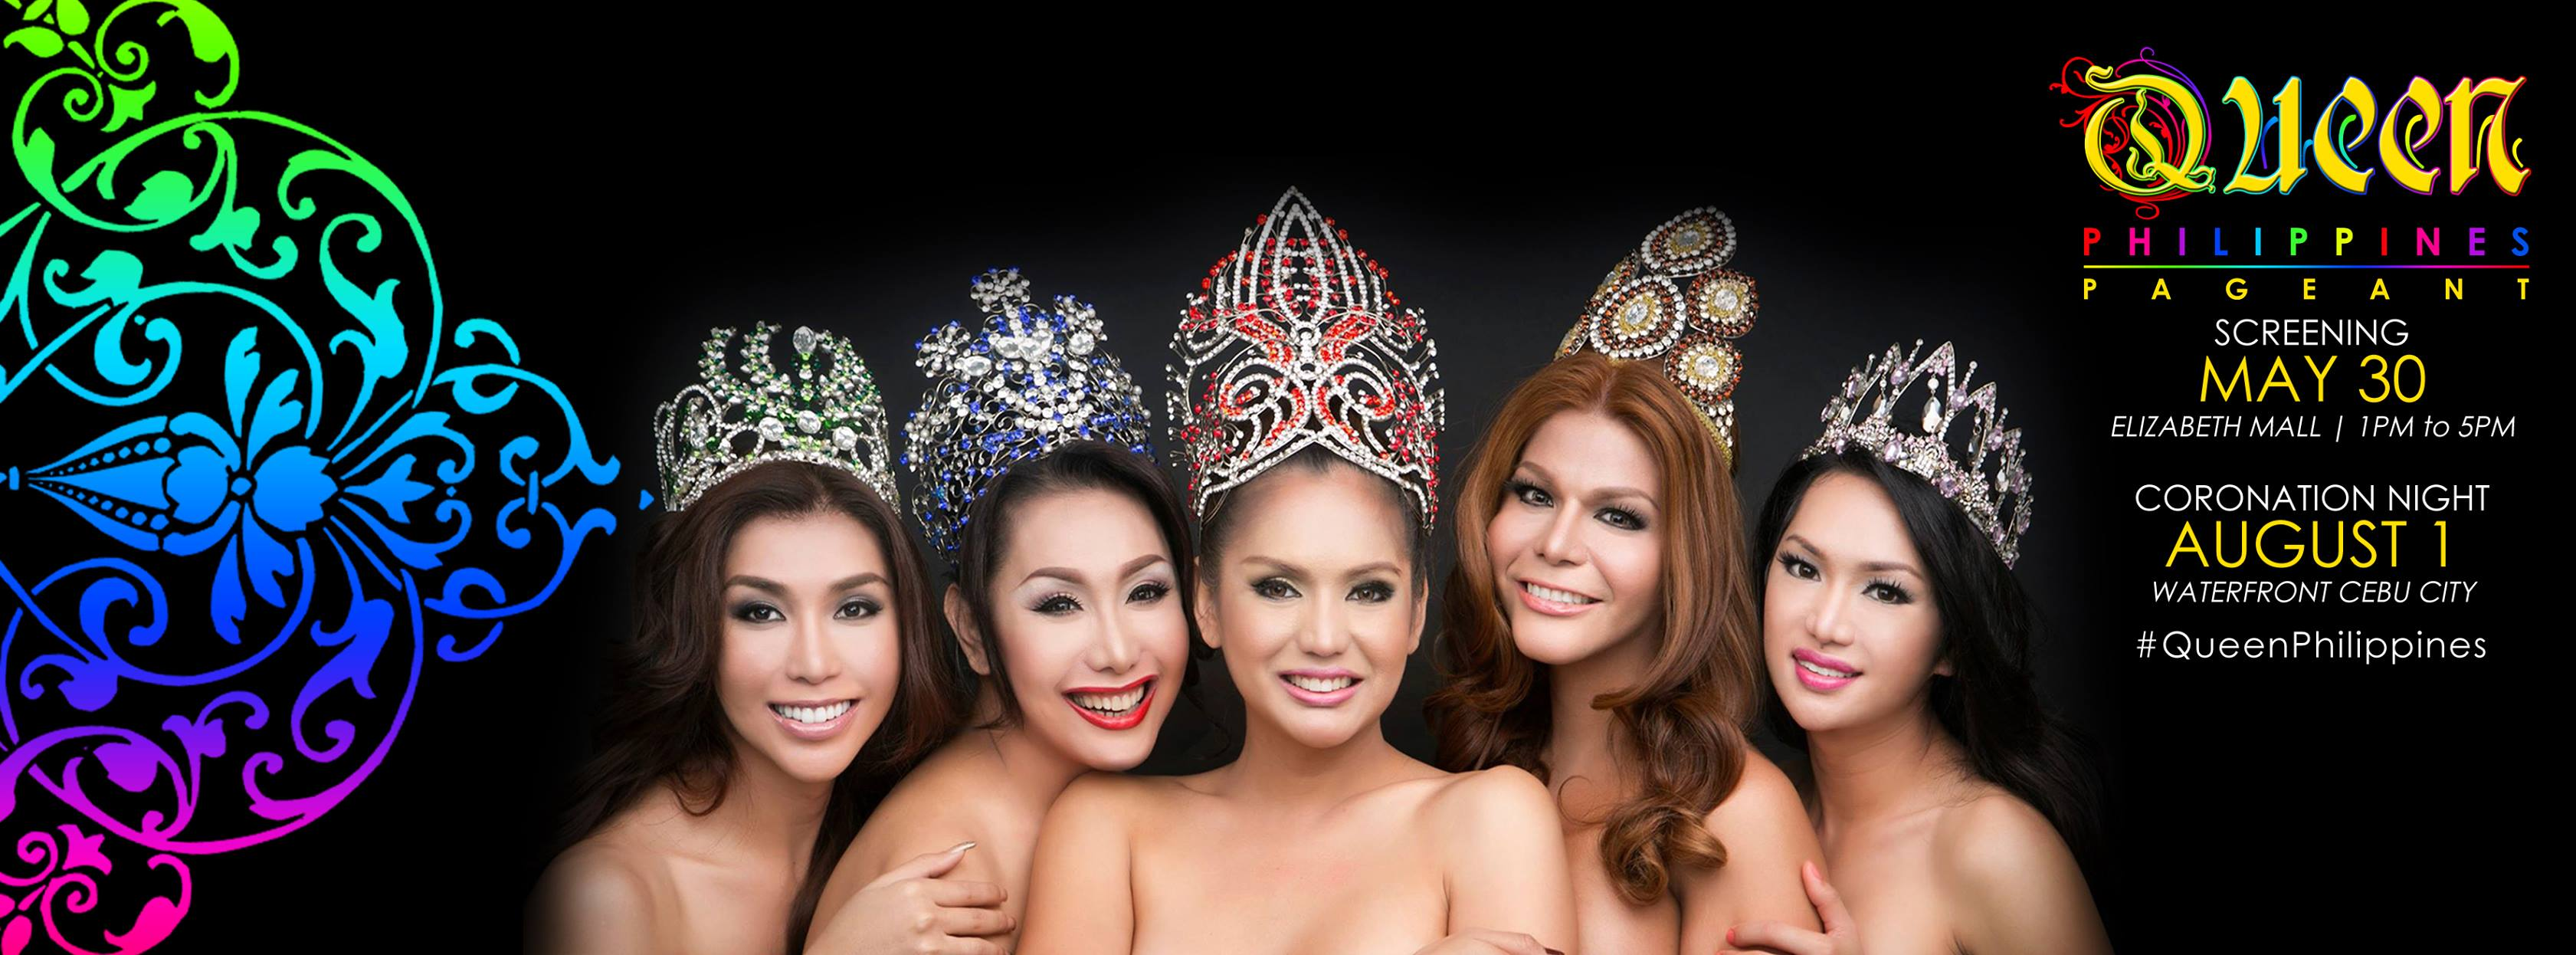 Queen Philippines Pageant